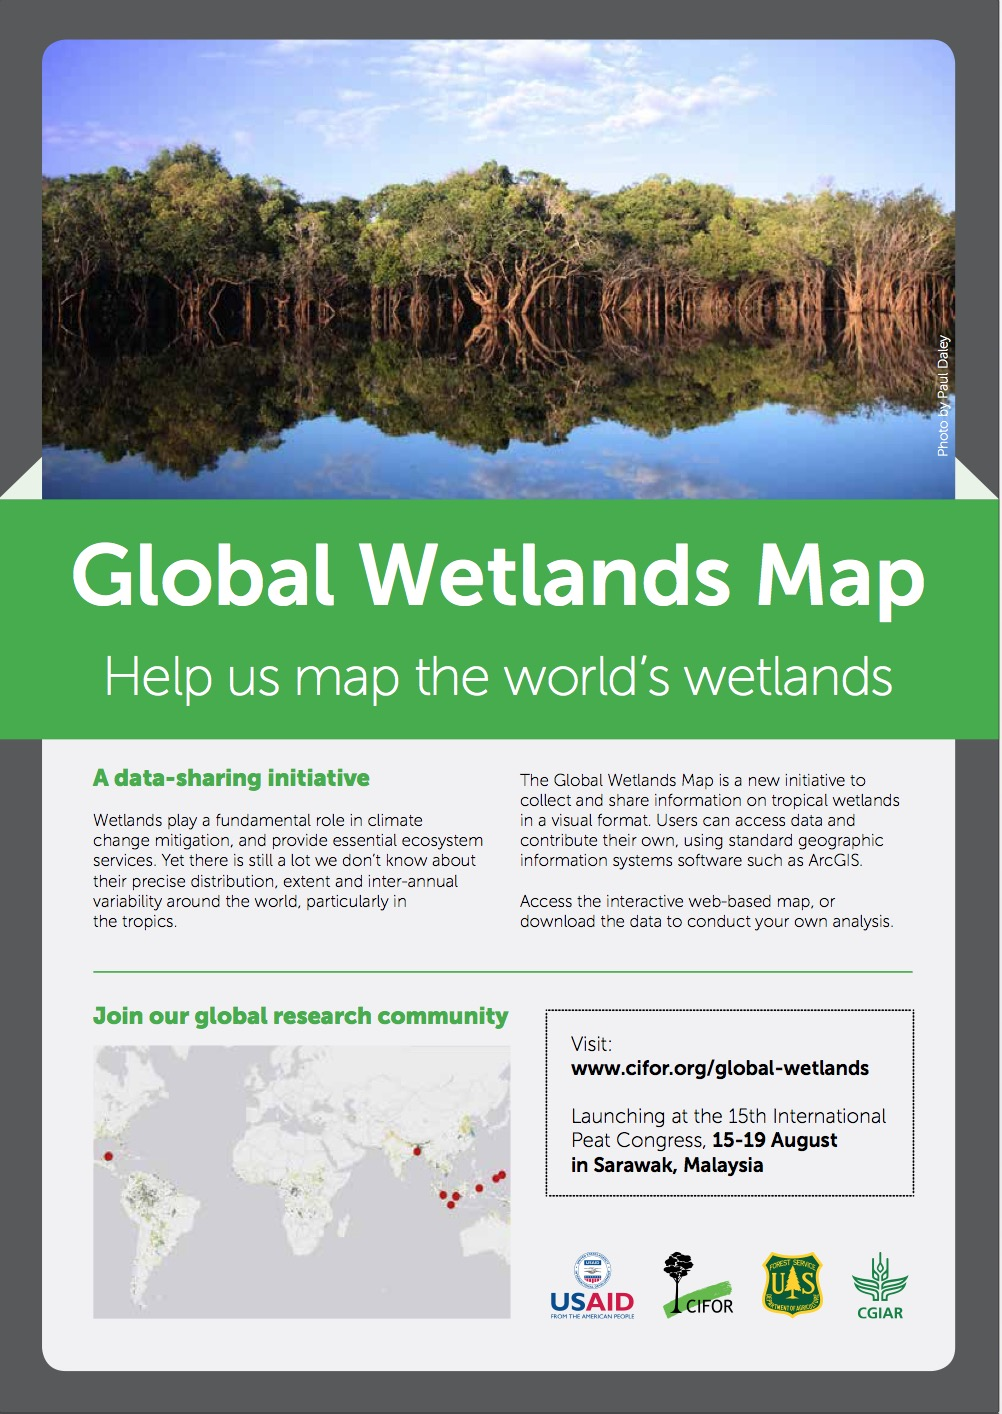 Global Wetlands Map: Help us map the world's wetlands